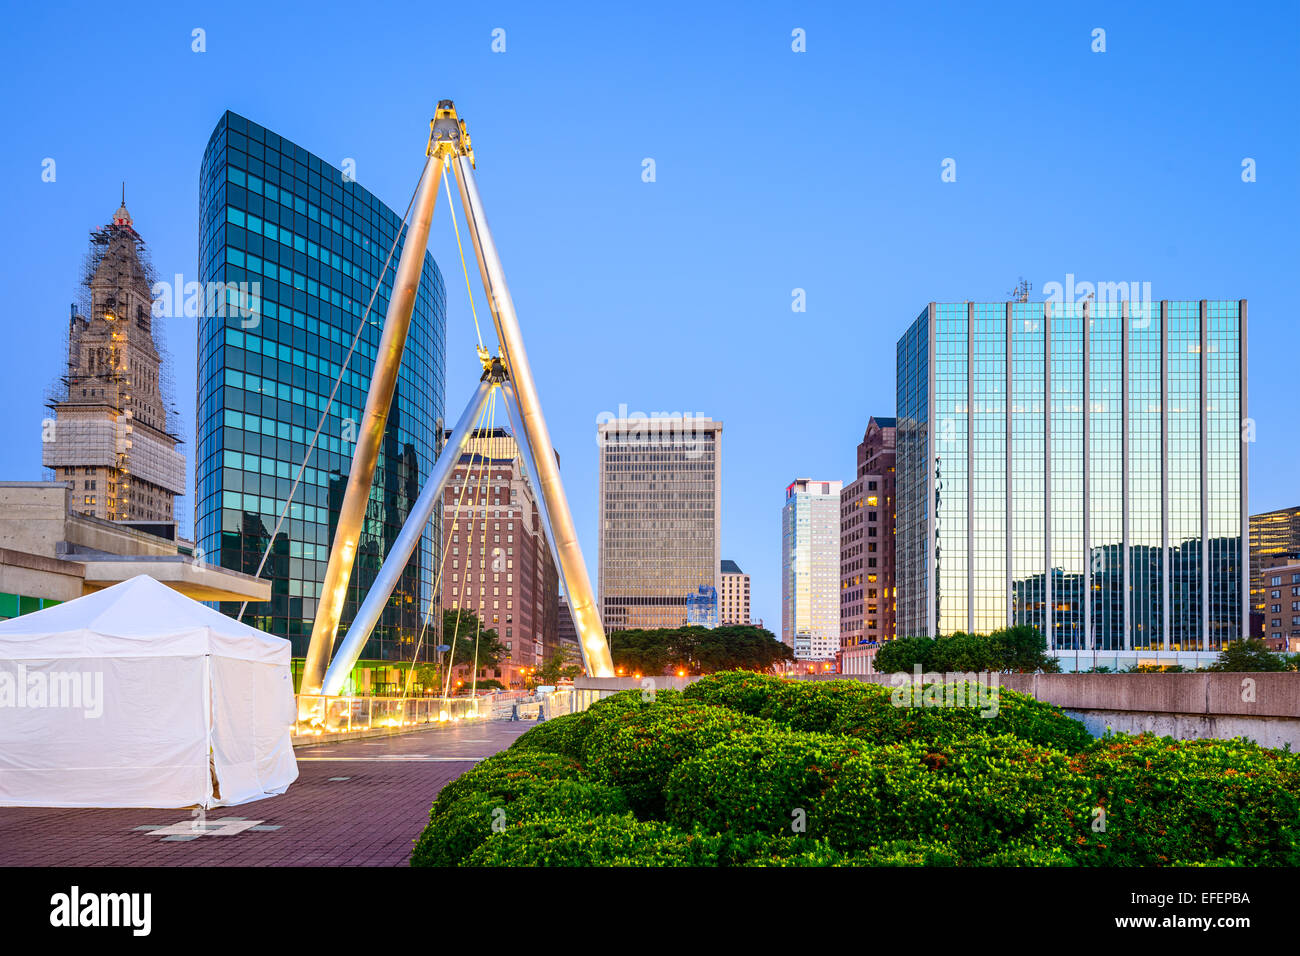 Hartford, Connecticut, USA skyline from Founders Bridge. - Stock Image